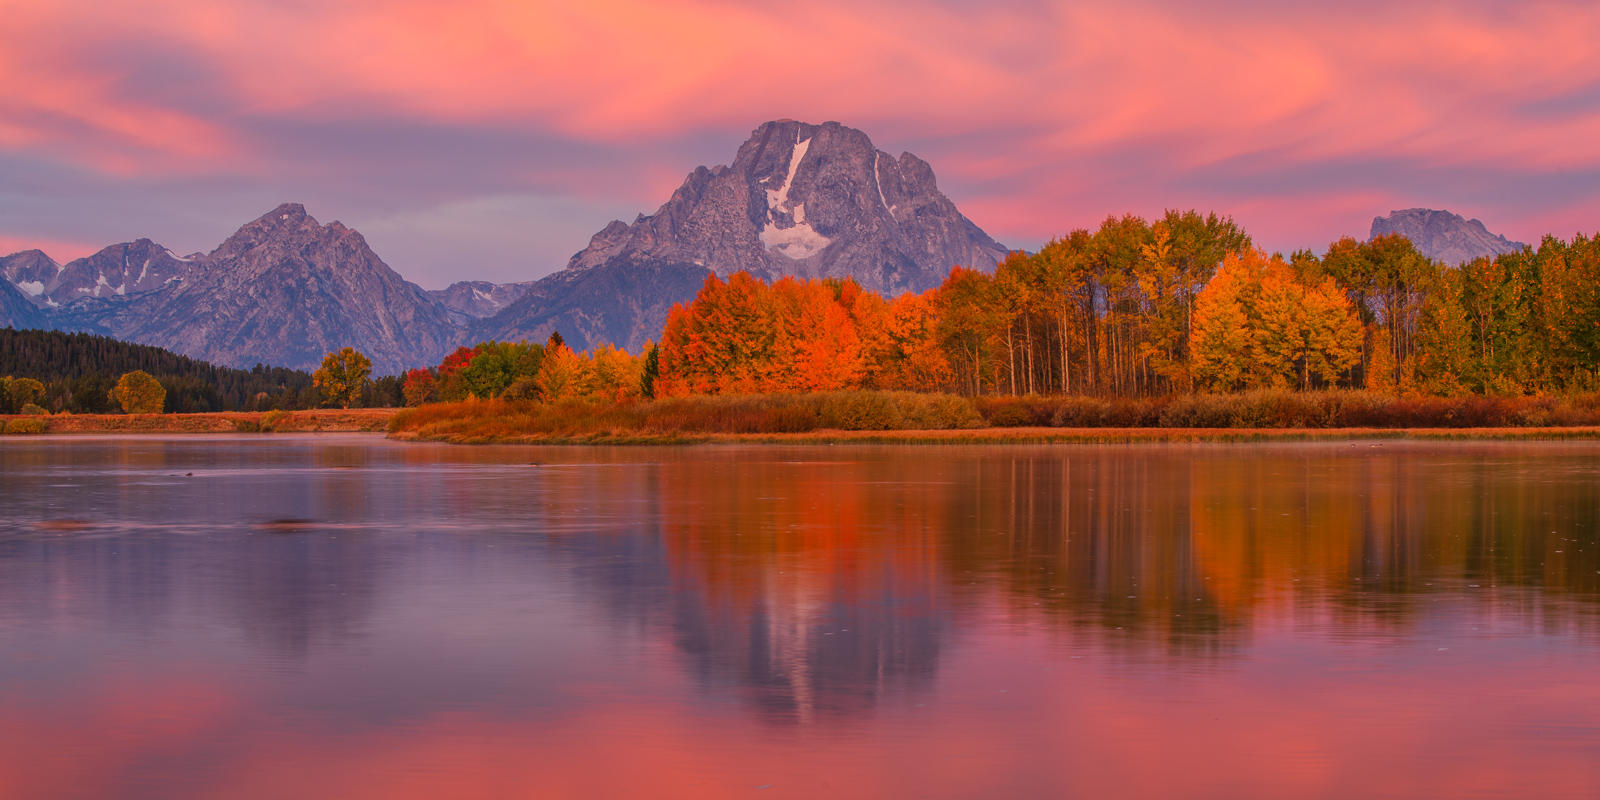 Monring reflections in Ox Bow Bend along the Snake River.Add beauty to your space with a Joseph Rossbach limited edition photography...